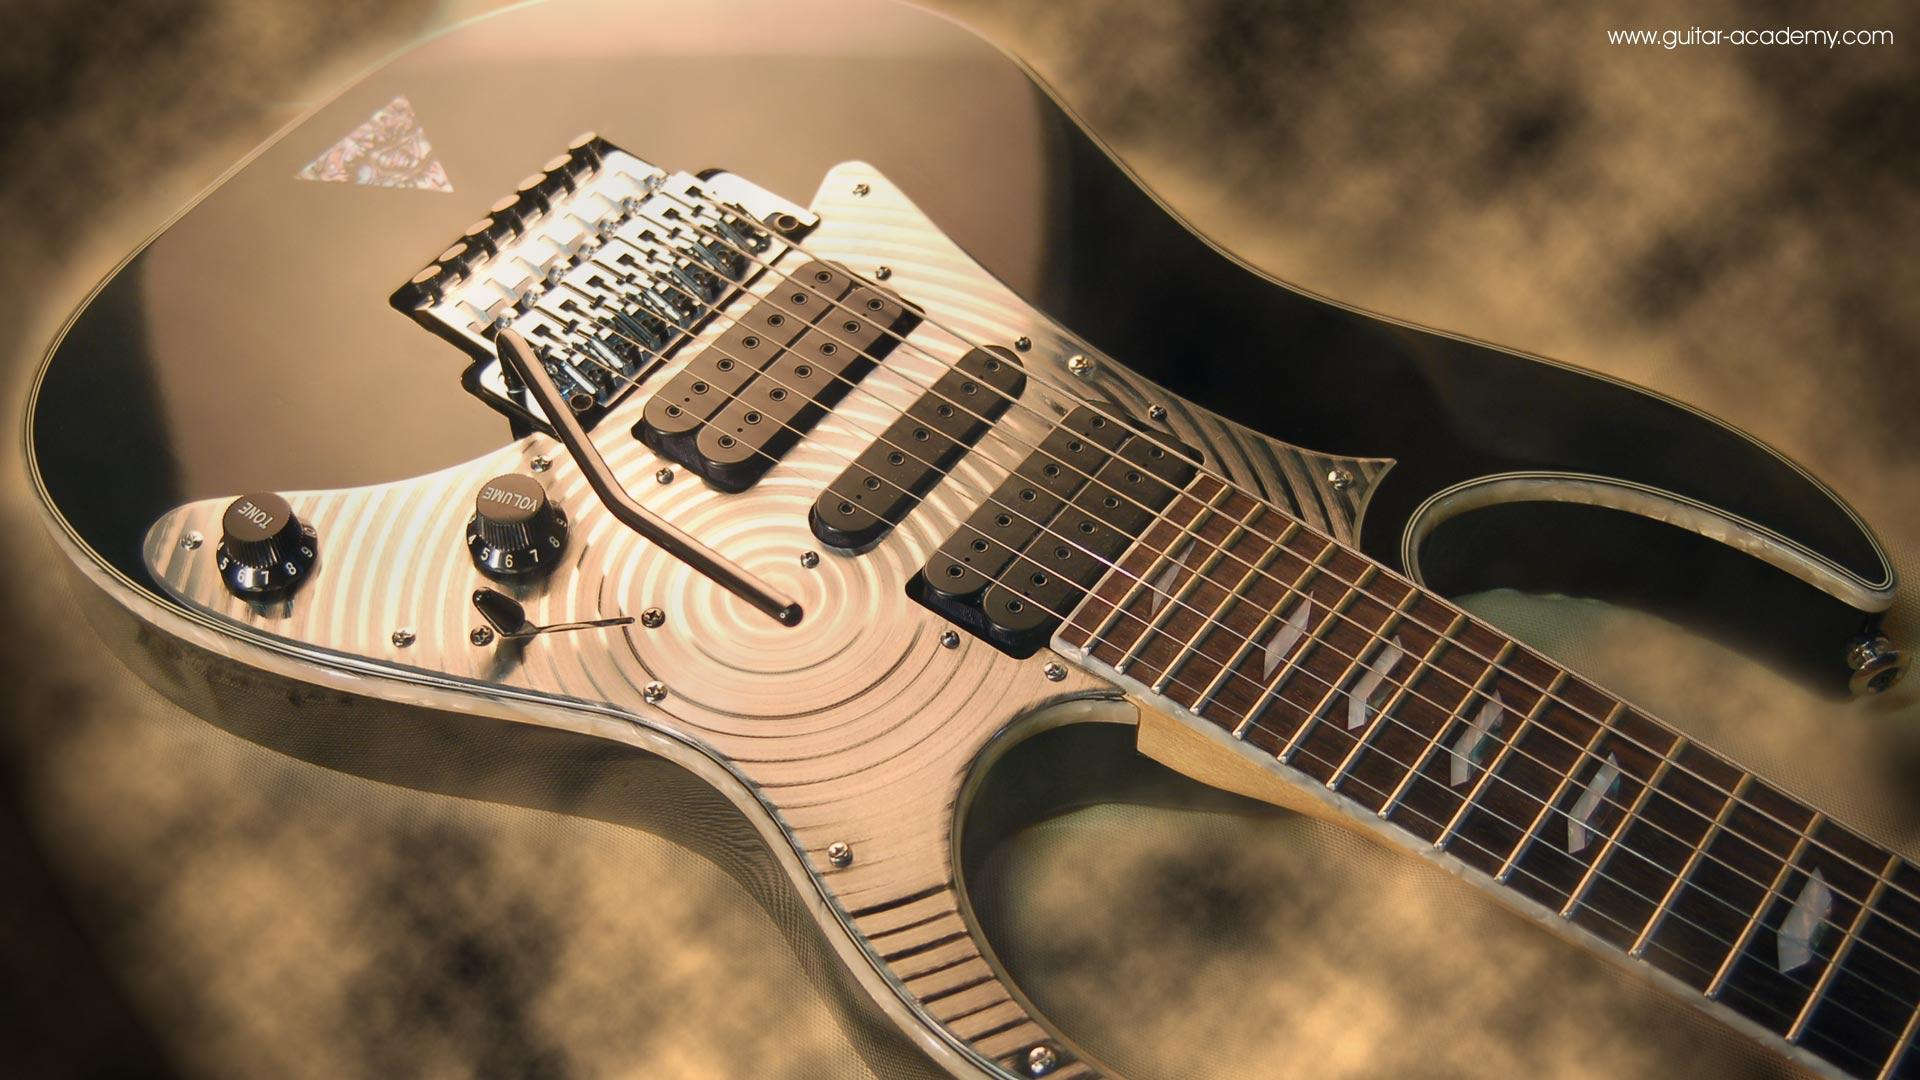 Guitar Wallpapers Hd For Mobile Wallpaper Cave